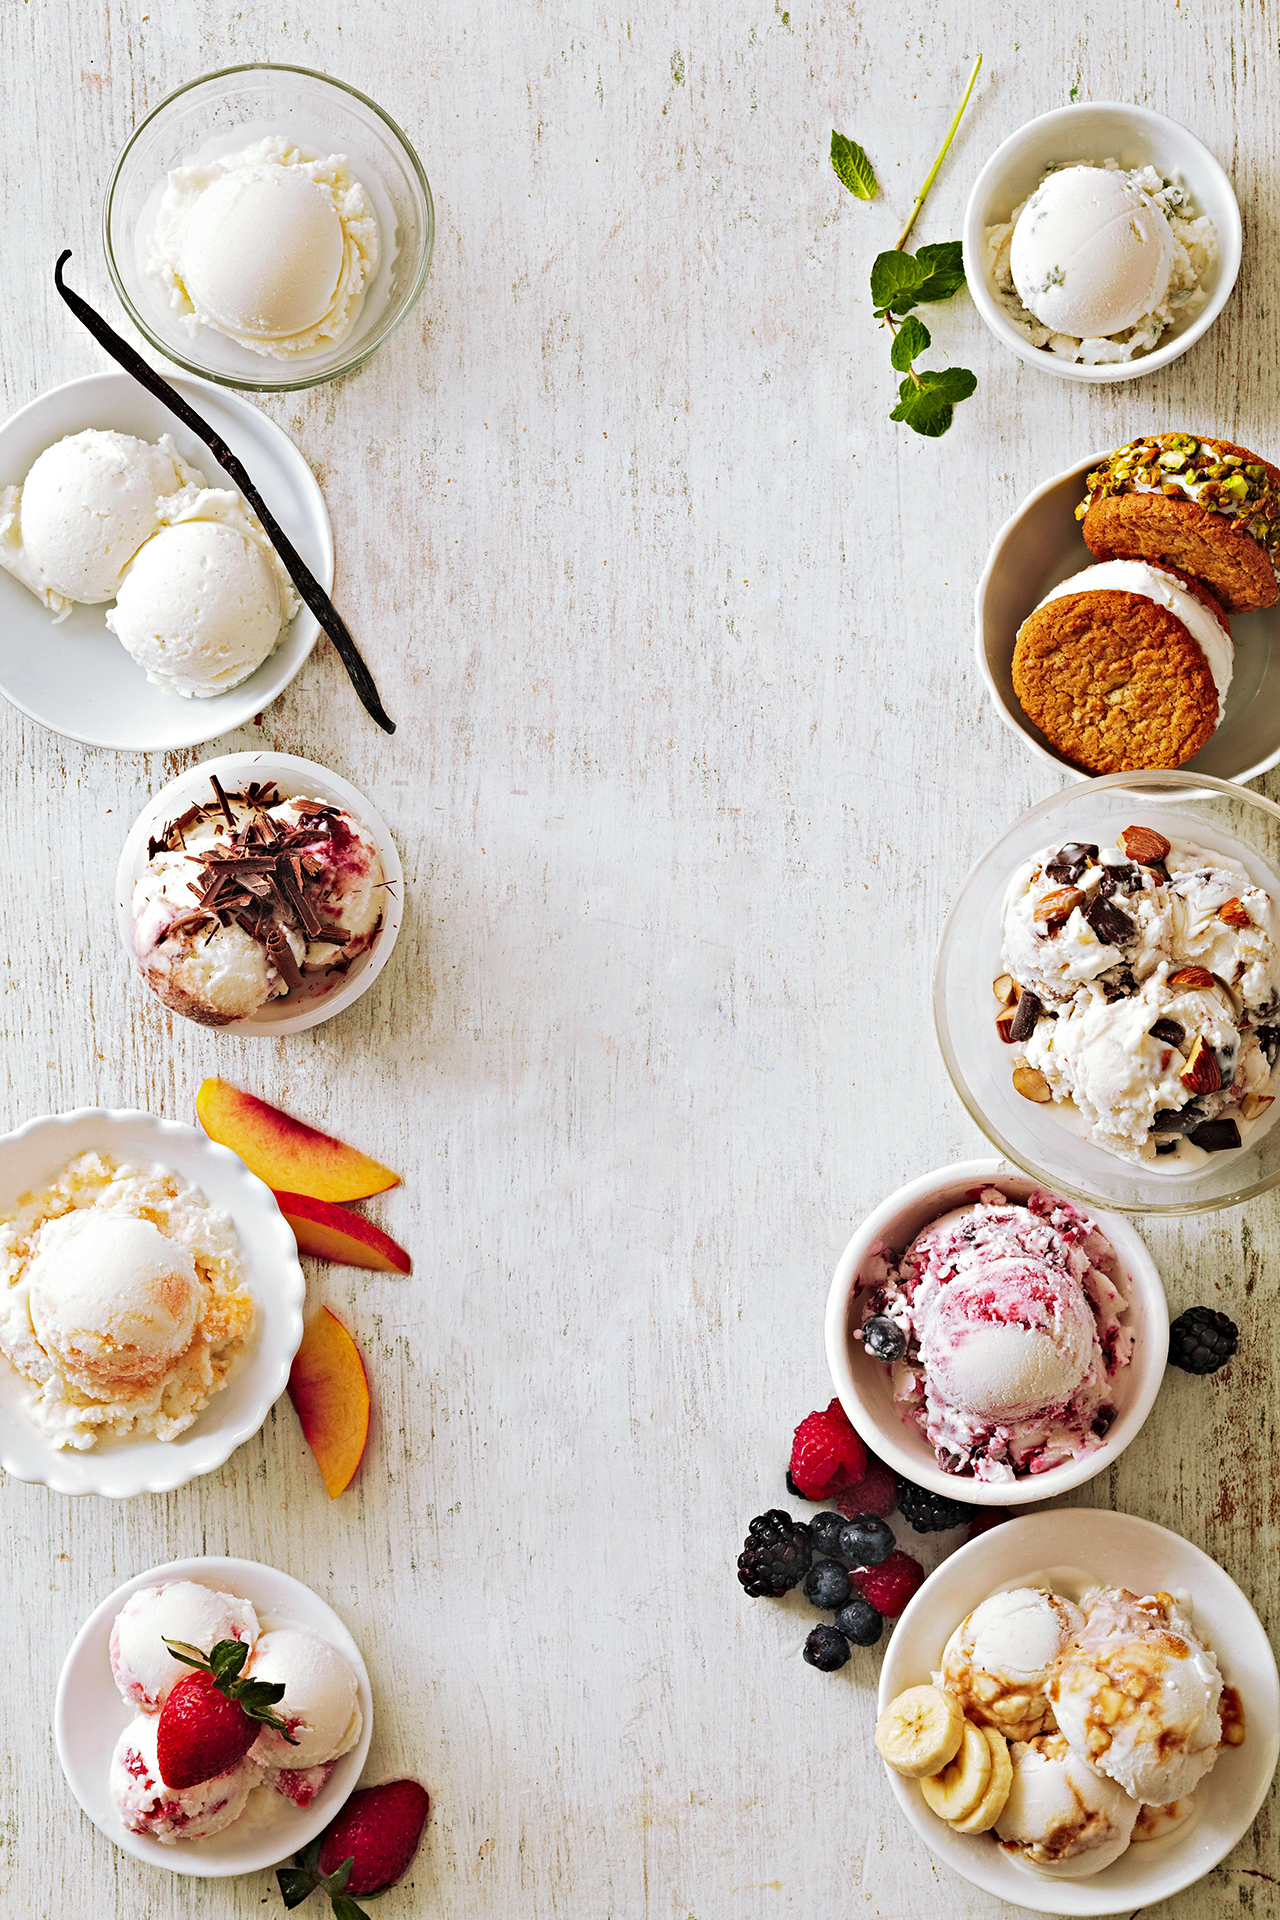 12 Frozen Yogurt Recipes You'll Love Even More than Ice Cream